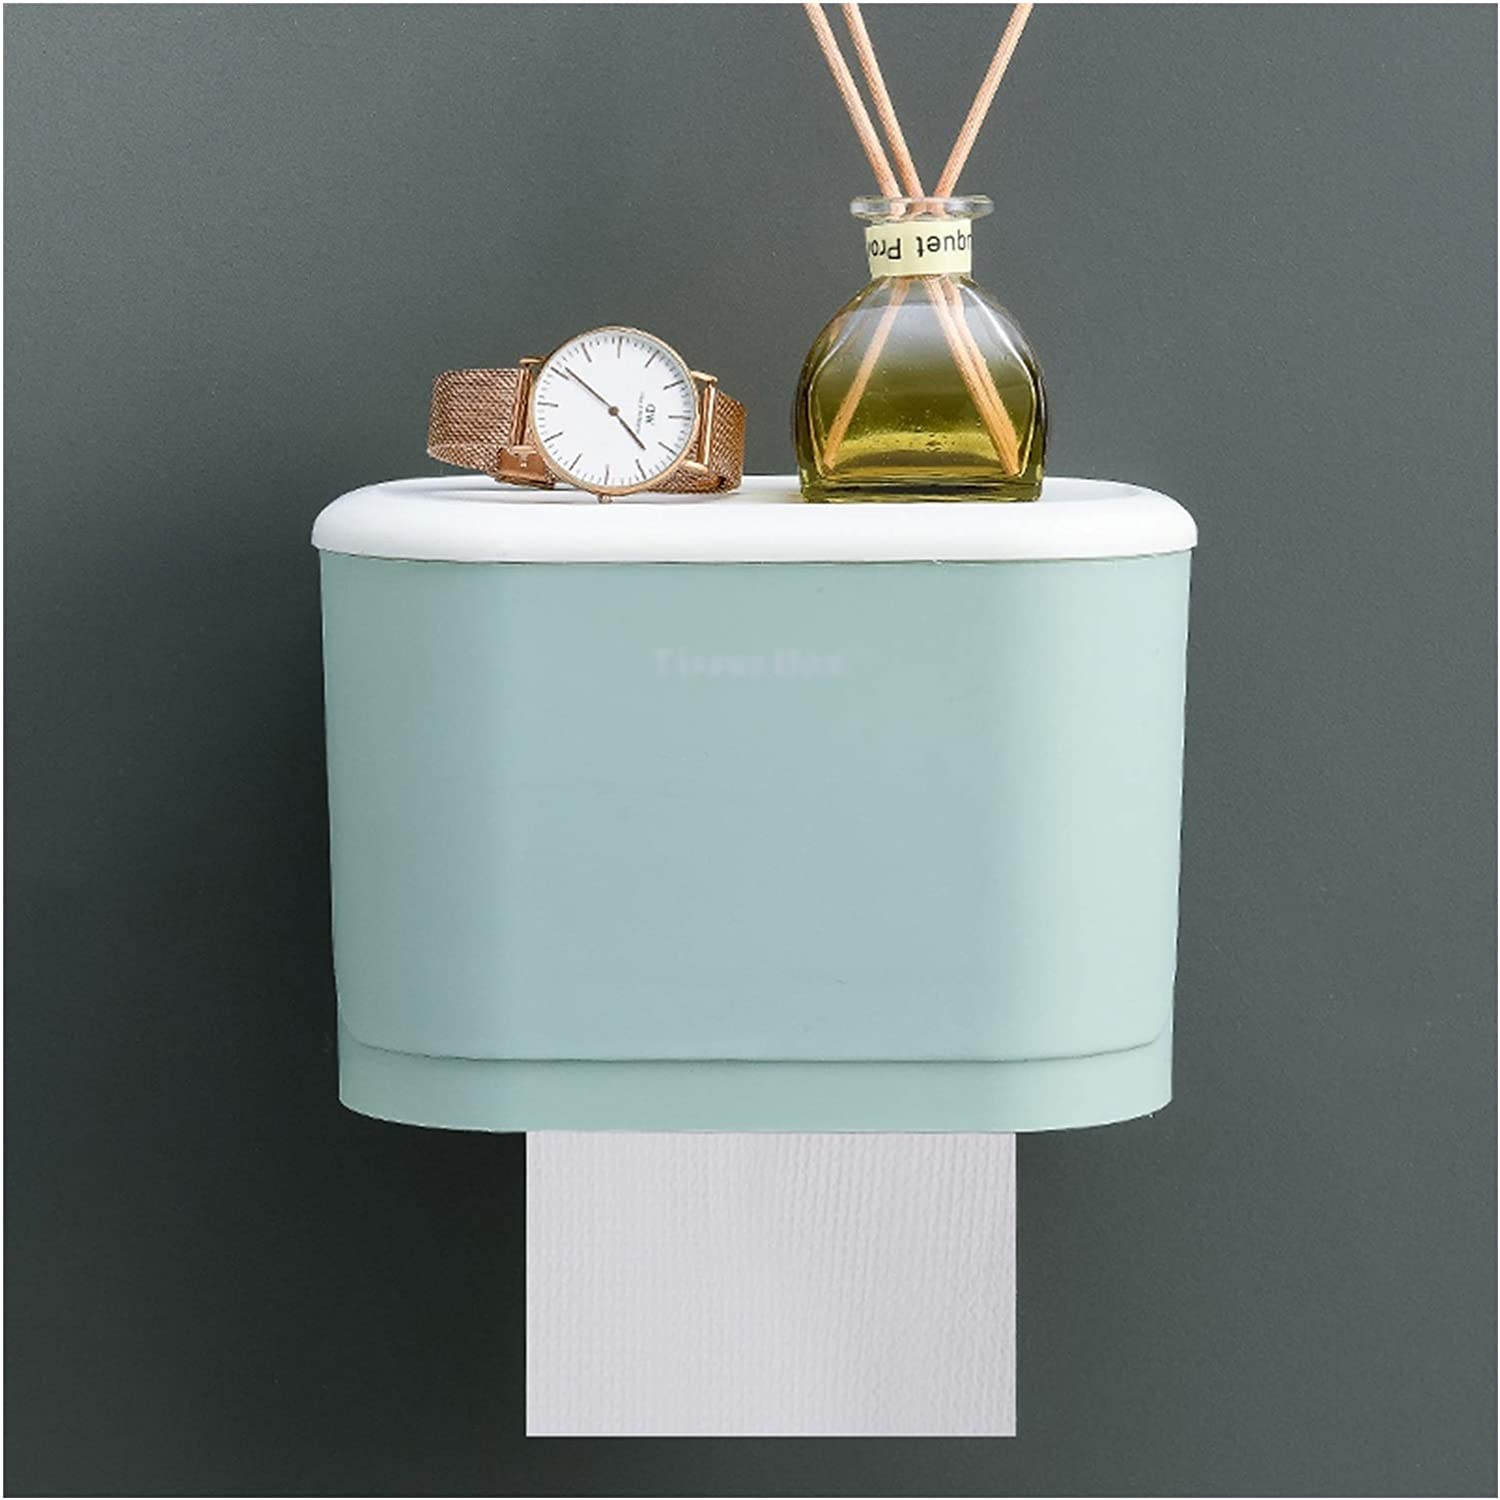 A surprise price is realized low-pricing Tissue Dispenser Box Plastic Holder